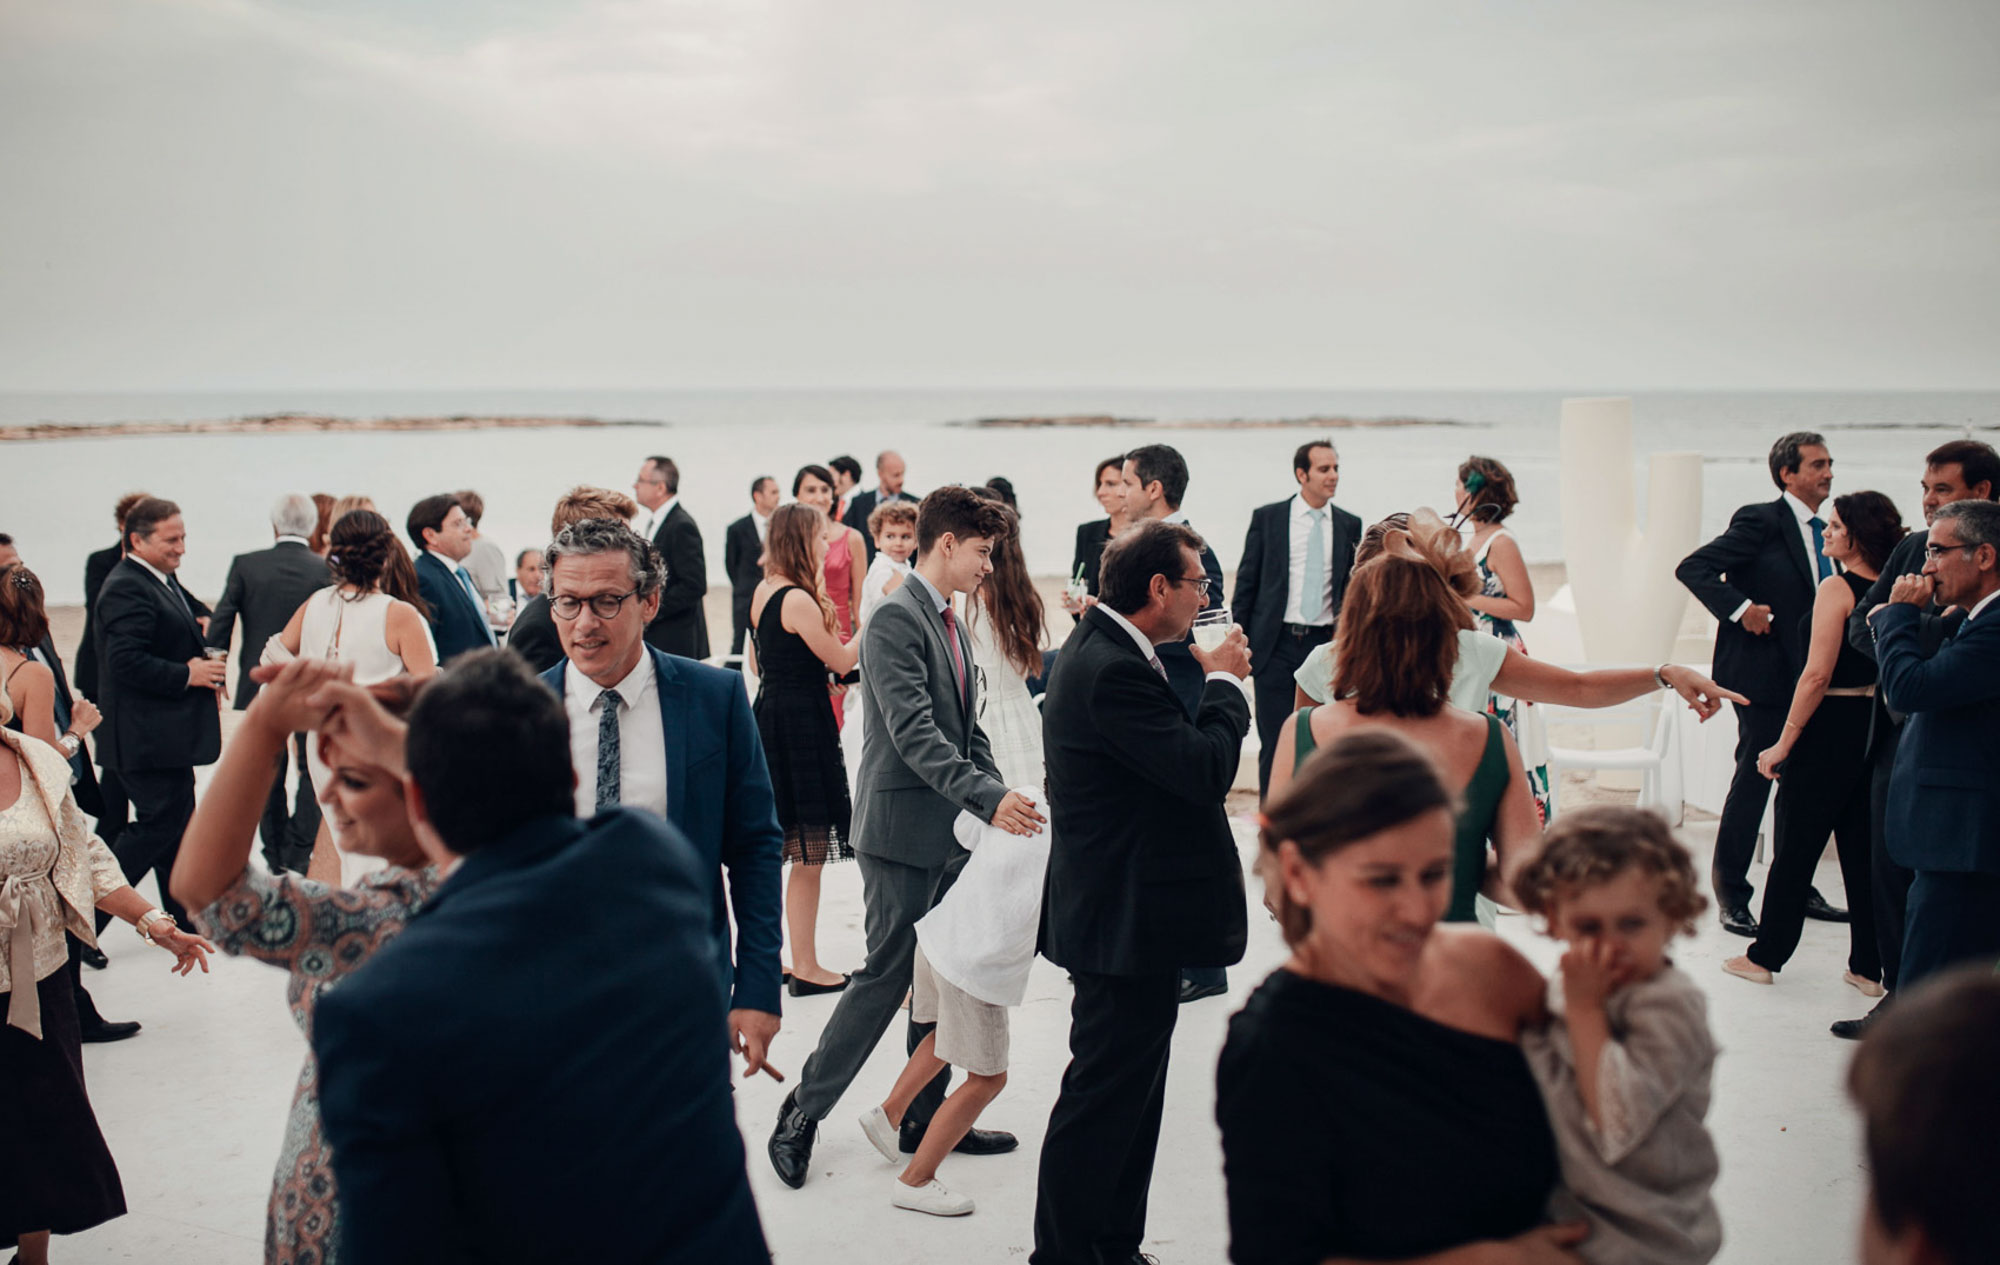 Guests wedding dancing playa Cabo de Palos fotografia